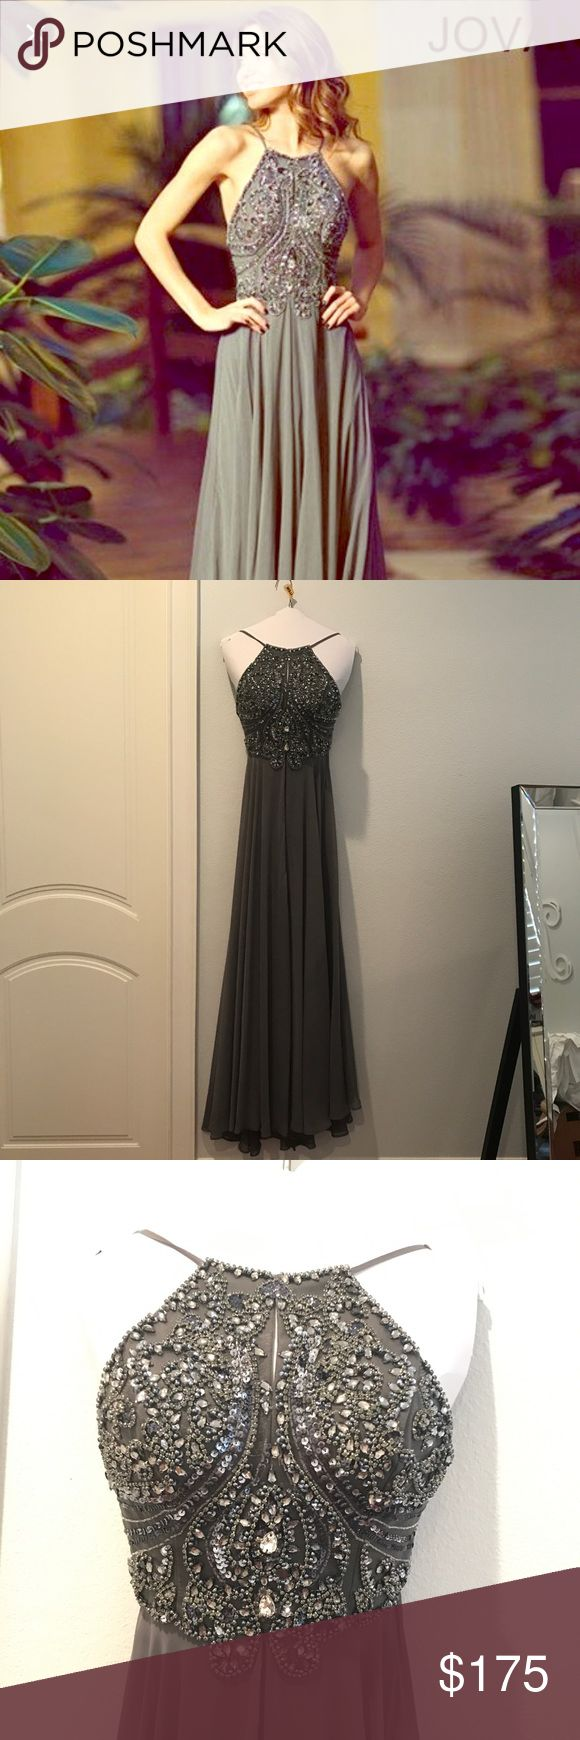 """Jovani Charcoal / Grey wedding or prom formal gown Beautiful gown. I wore it to a wedding and had so many compliments!! This dress is perfect for any formal event like prom. It gives you a beautiful shape and comes with built in cups. Hemmed to fit 5""""7. There a couple of beads missing that are barely noticeable and a few water stains in the chiffon that are difficult to picture (reflected in price). Dry cleaned immediately. Jovani Dresses Prom"""